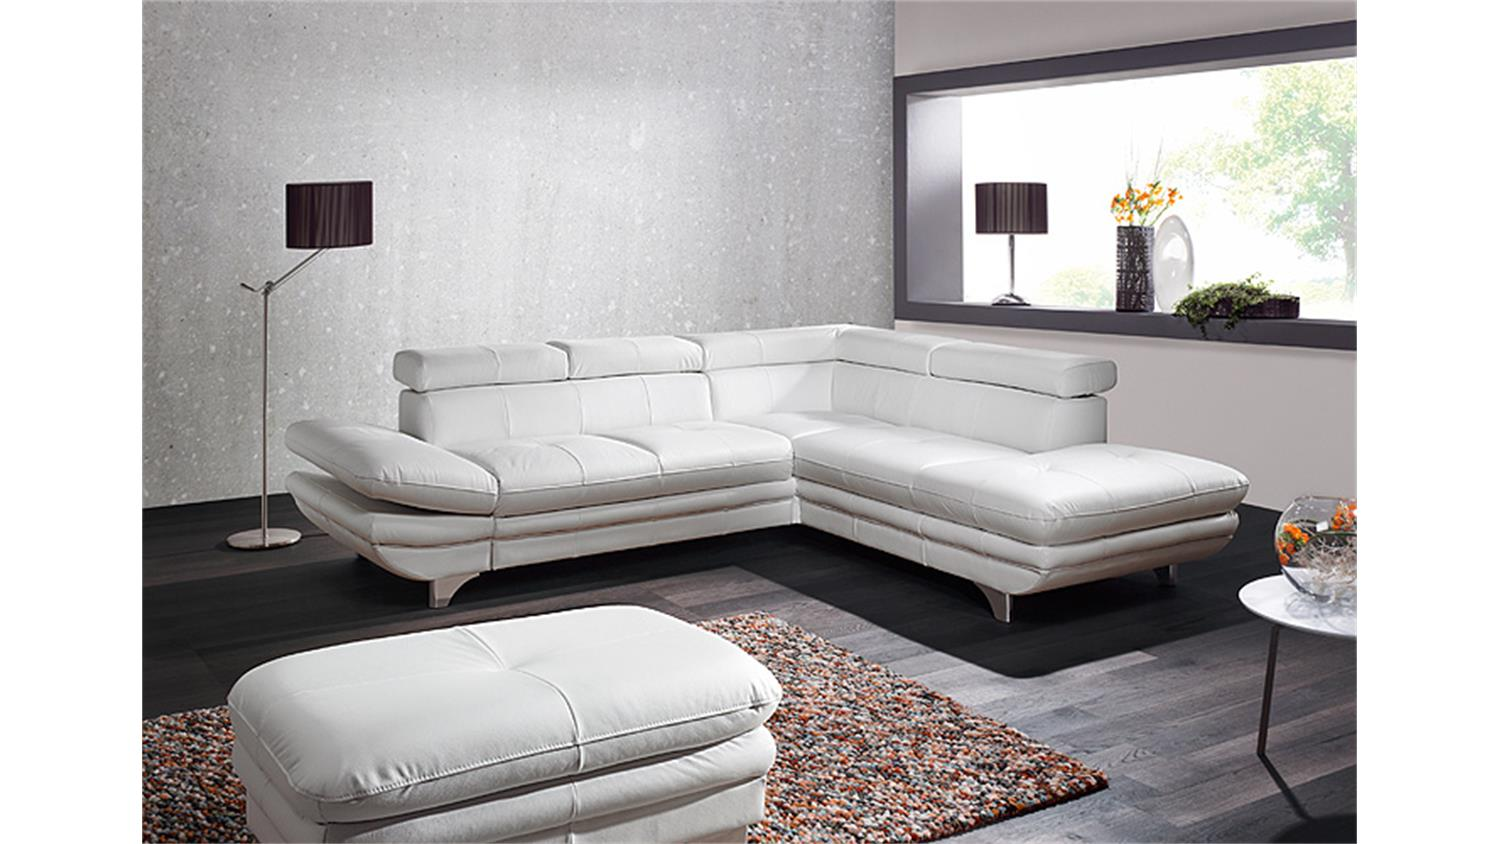 ecksofa enterprise sofa wohnlandschaft wei bettfunktion. Black Bedroom Furniture Sets. Home Design Ideas